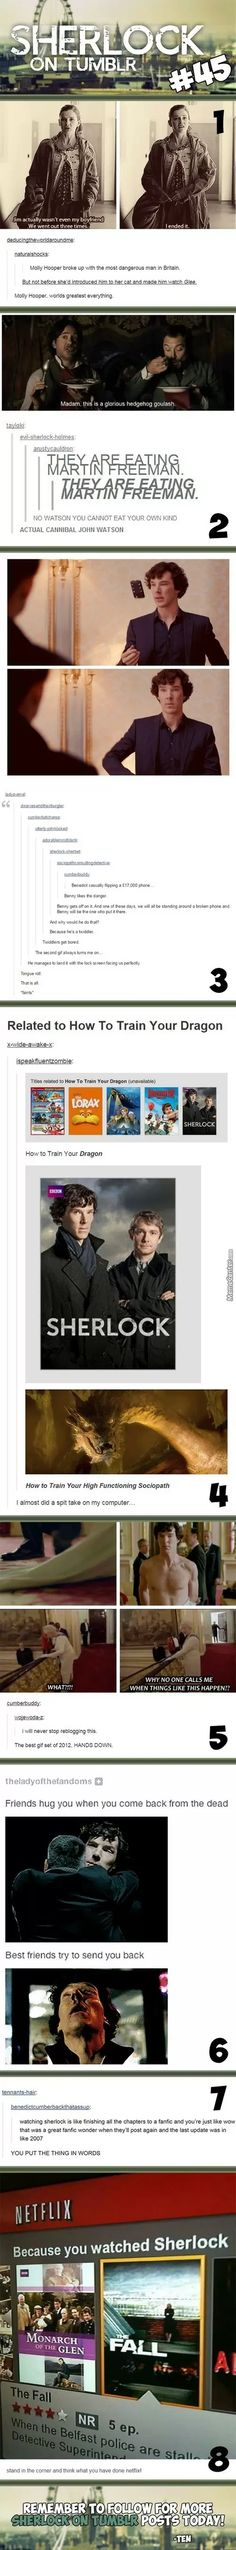 Sherlock On Tumblr #45